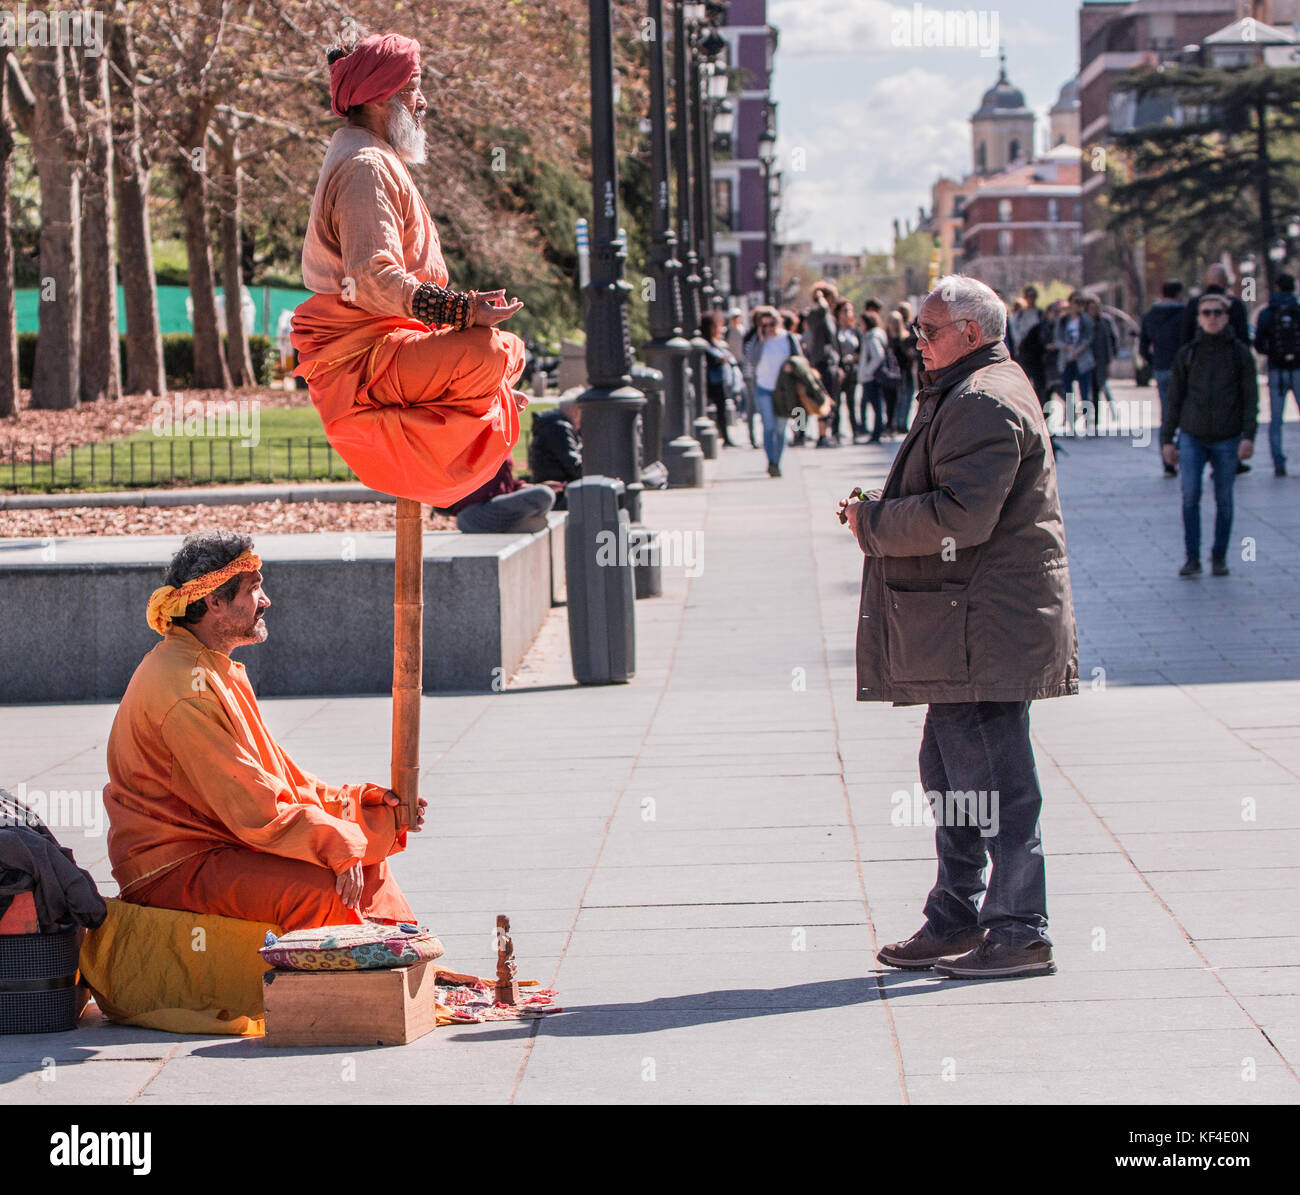 Indian Street Entertainers in meditative pose and orange clothing with tourists watching in Madrid Spain, Europe. - Stock Image